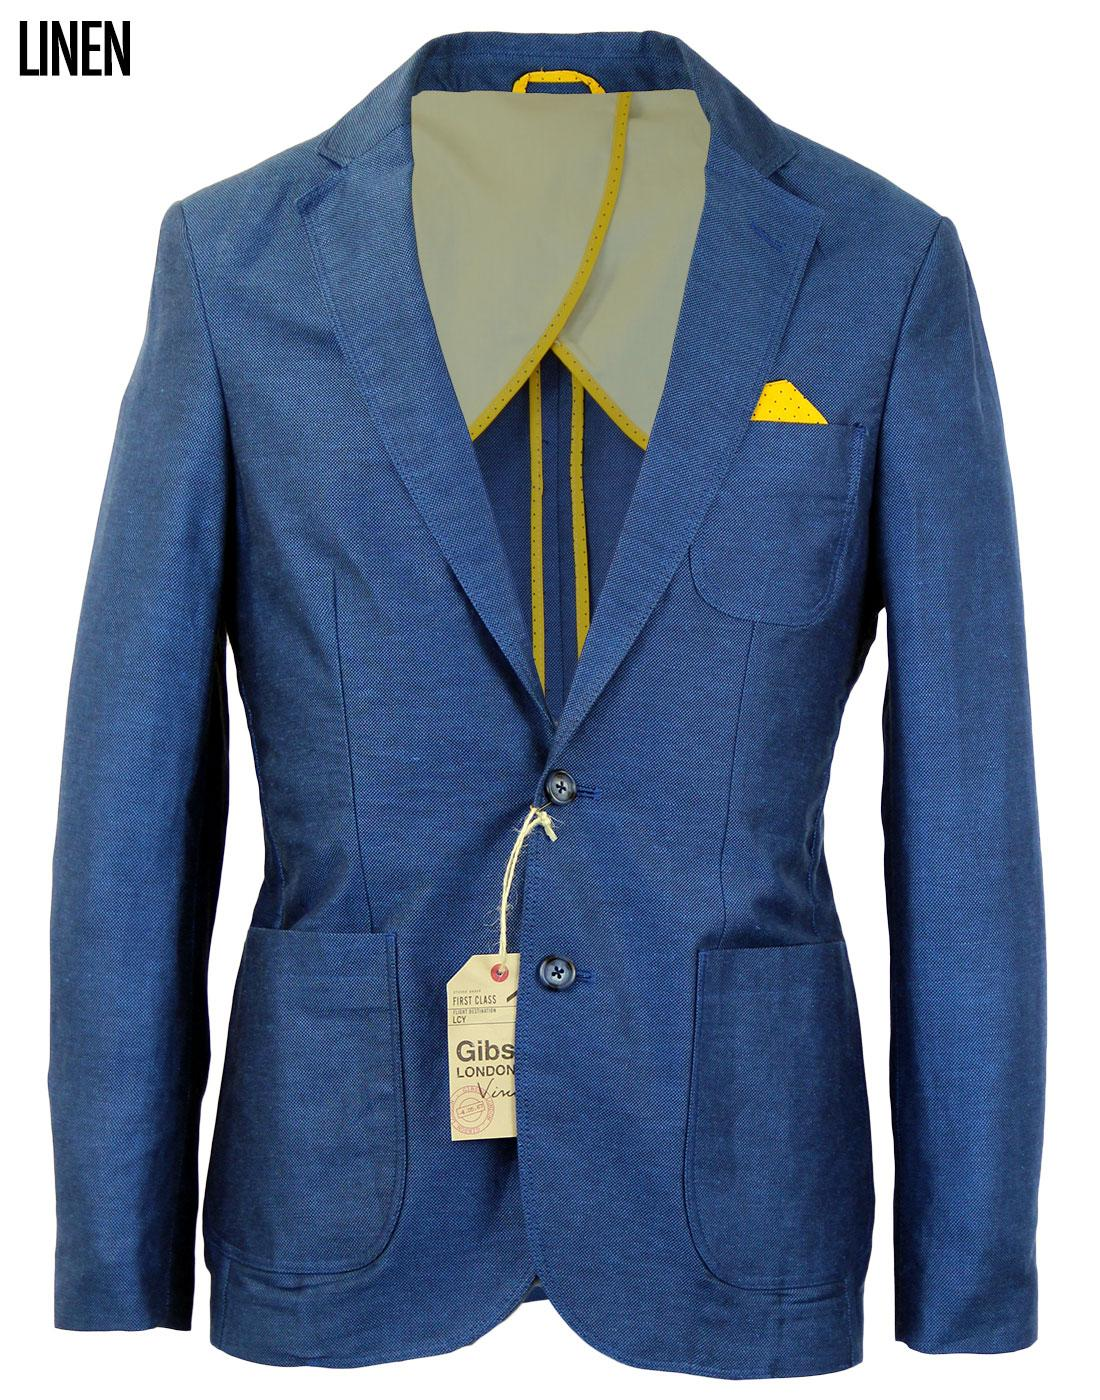 Ludgate GIBSON LONDON Retro Tailored Linen Blazer